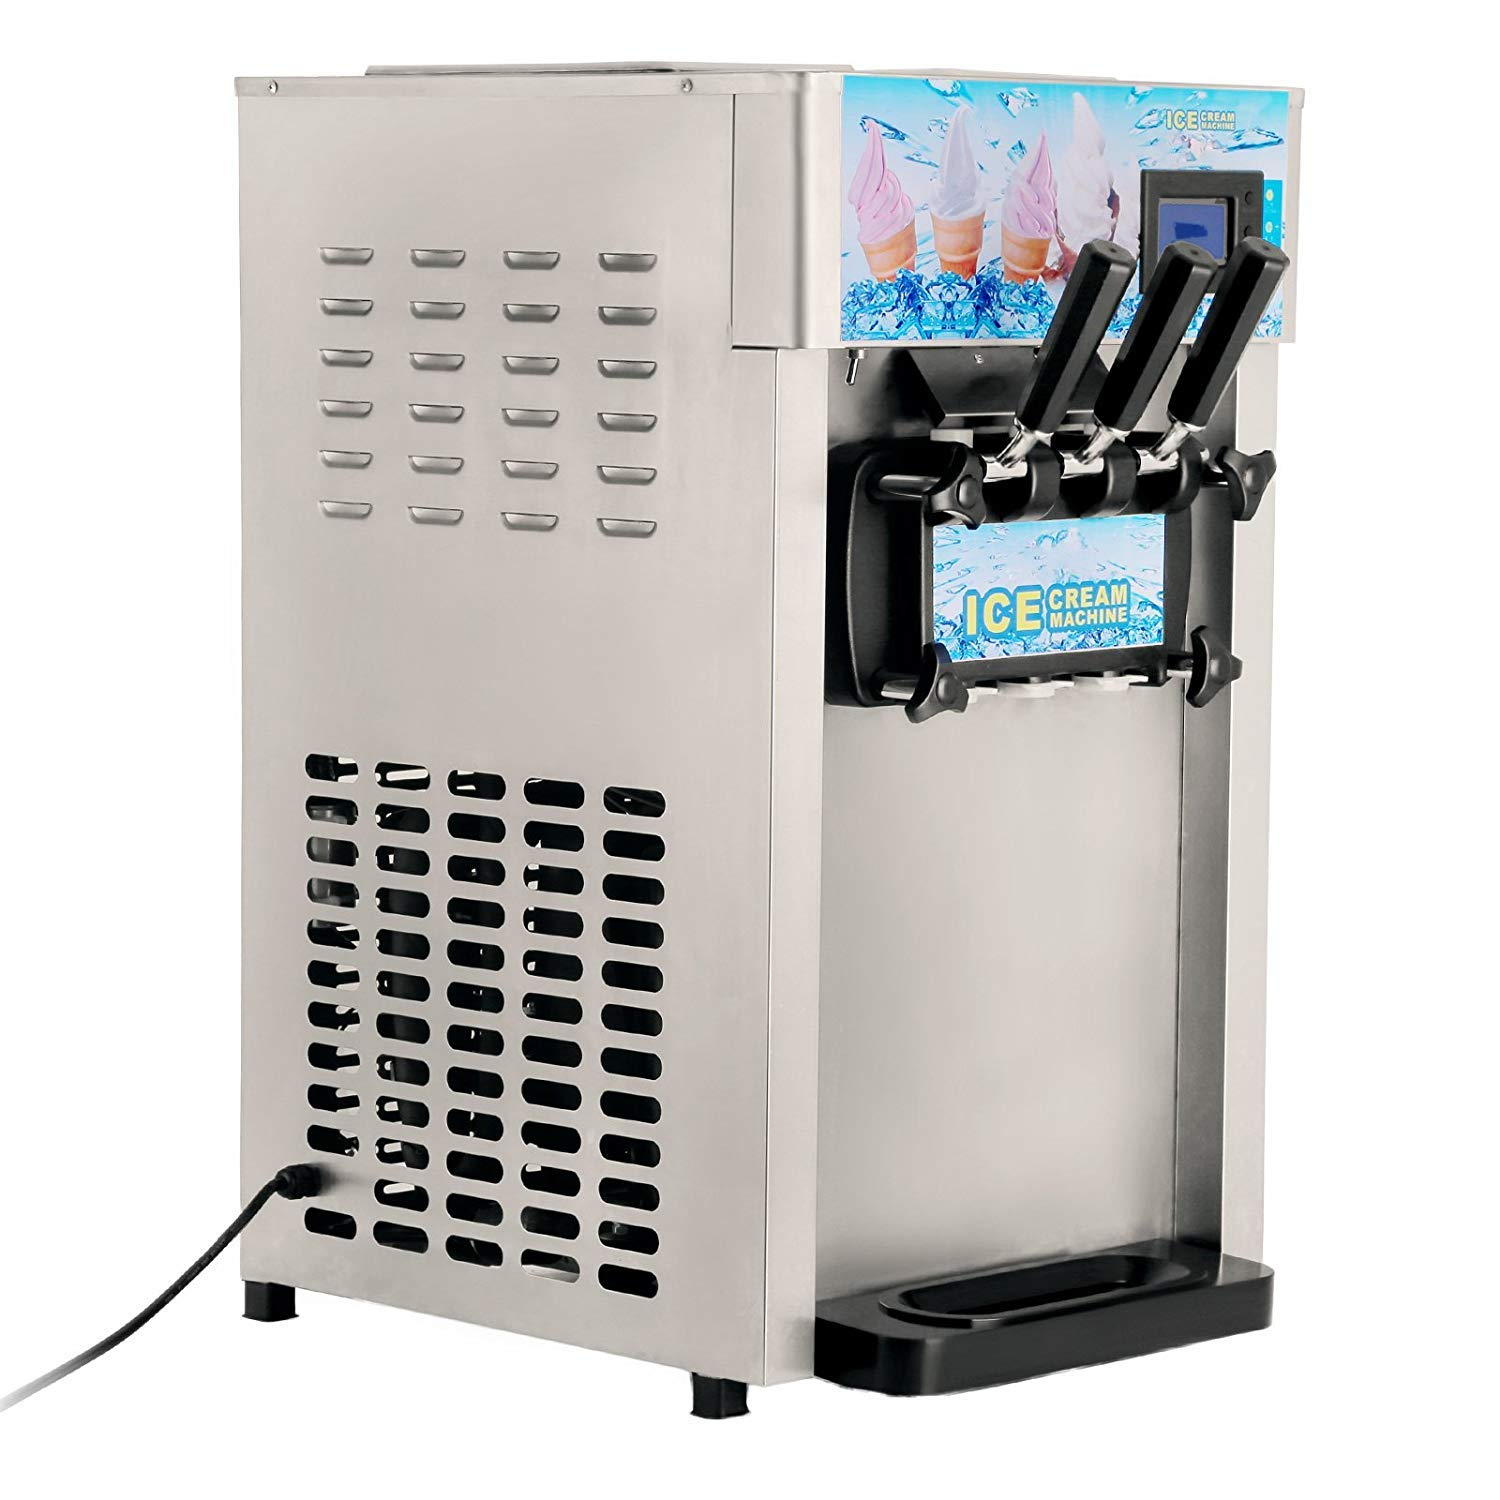 VEVOR 1200W Commercial Soft Ice Cream Machine 3 Flavor 4.75Gal/H Yogurt Maker Perfect for Coffee Shop or Family Party